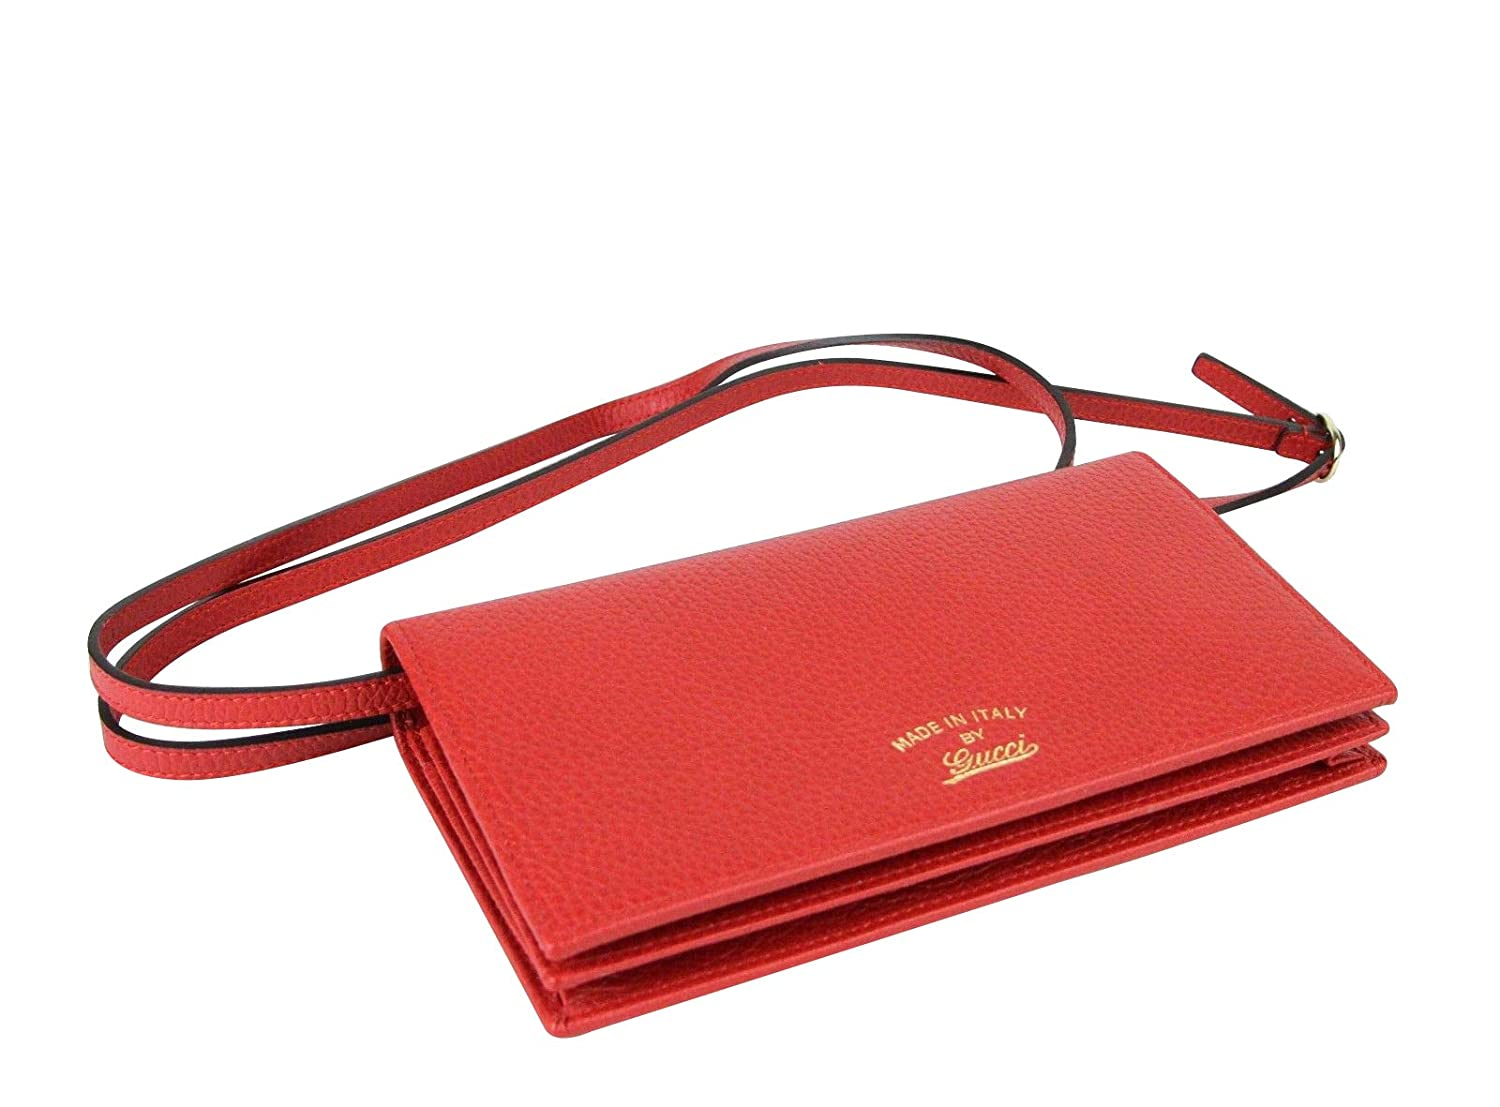 76eb65446db Amazon.com  Gucci Women s Swing Red Leather Crossbody Clutch Wallet 368231  6523  Shoes